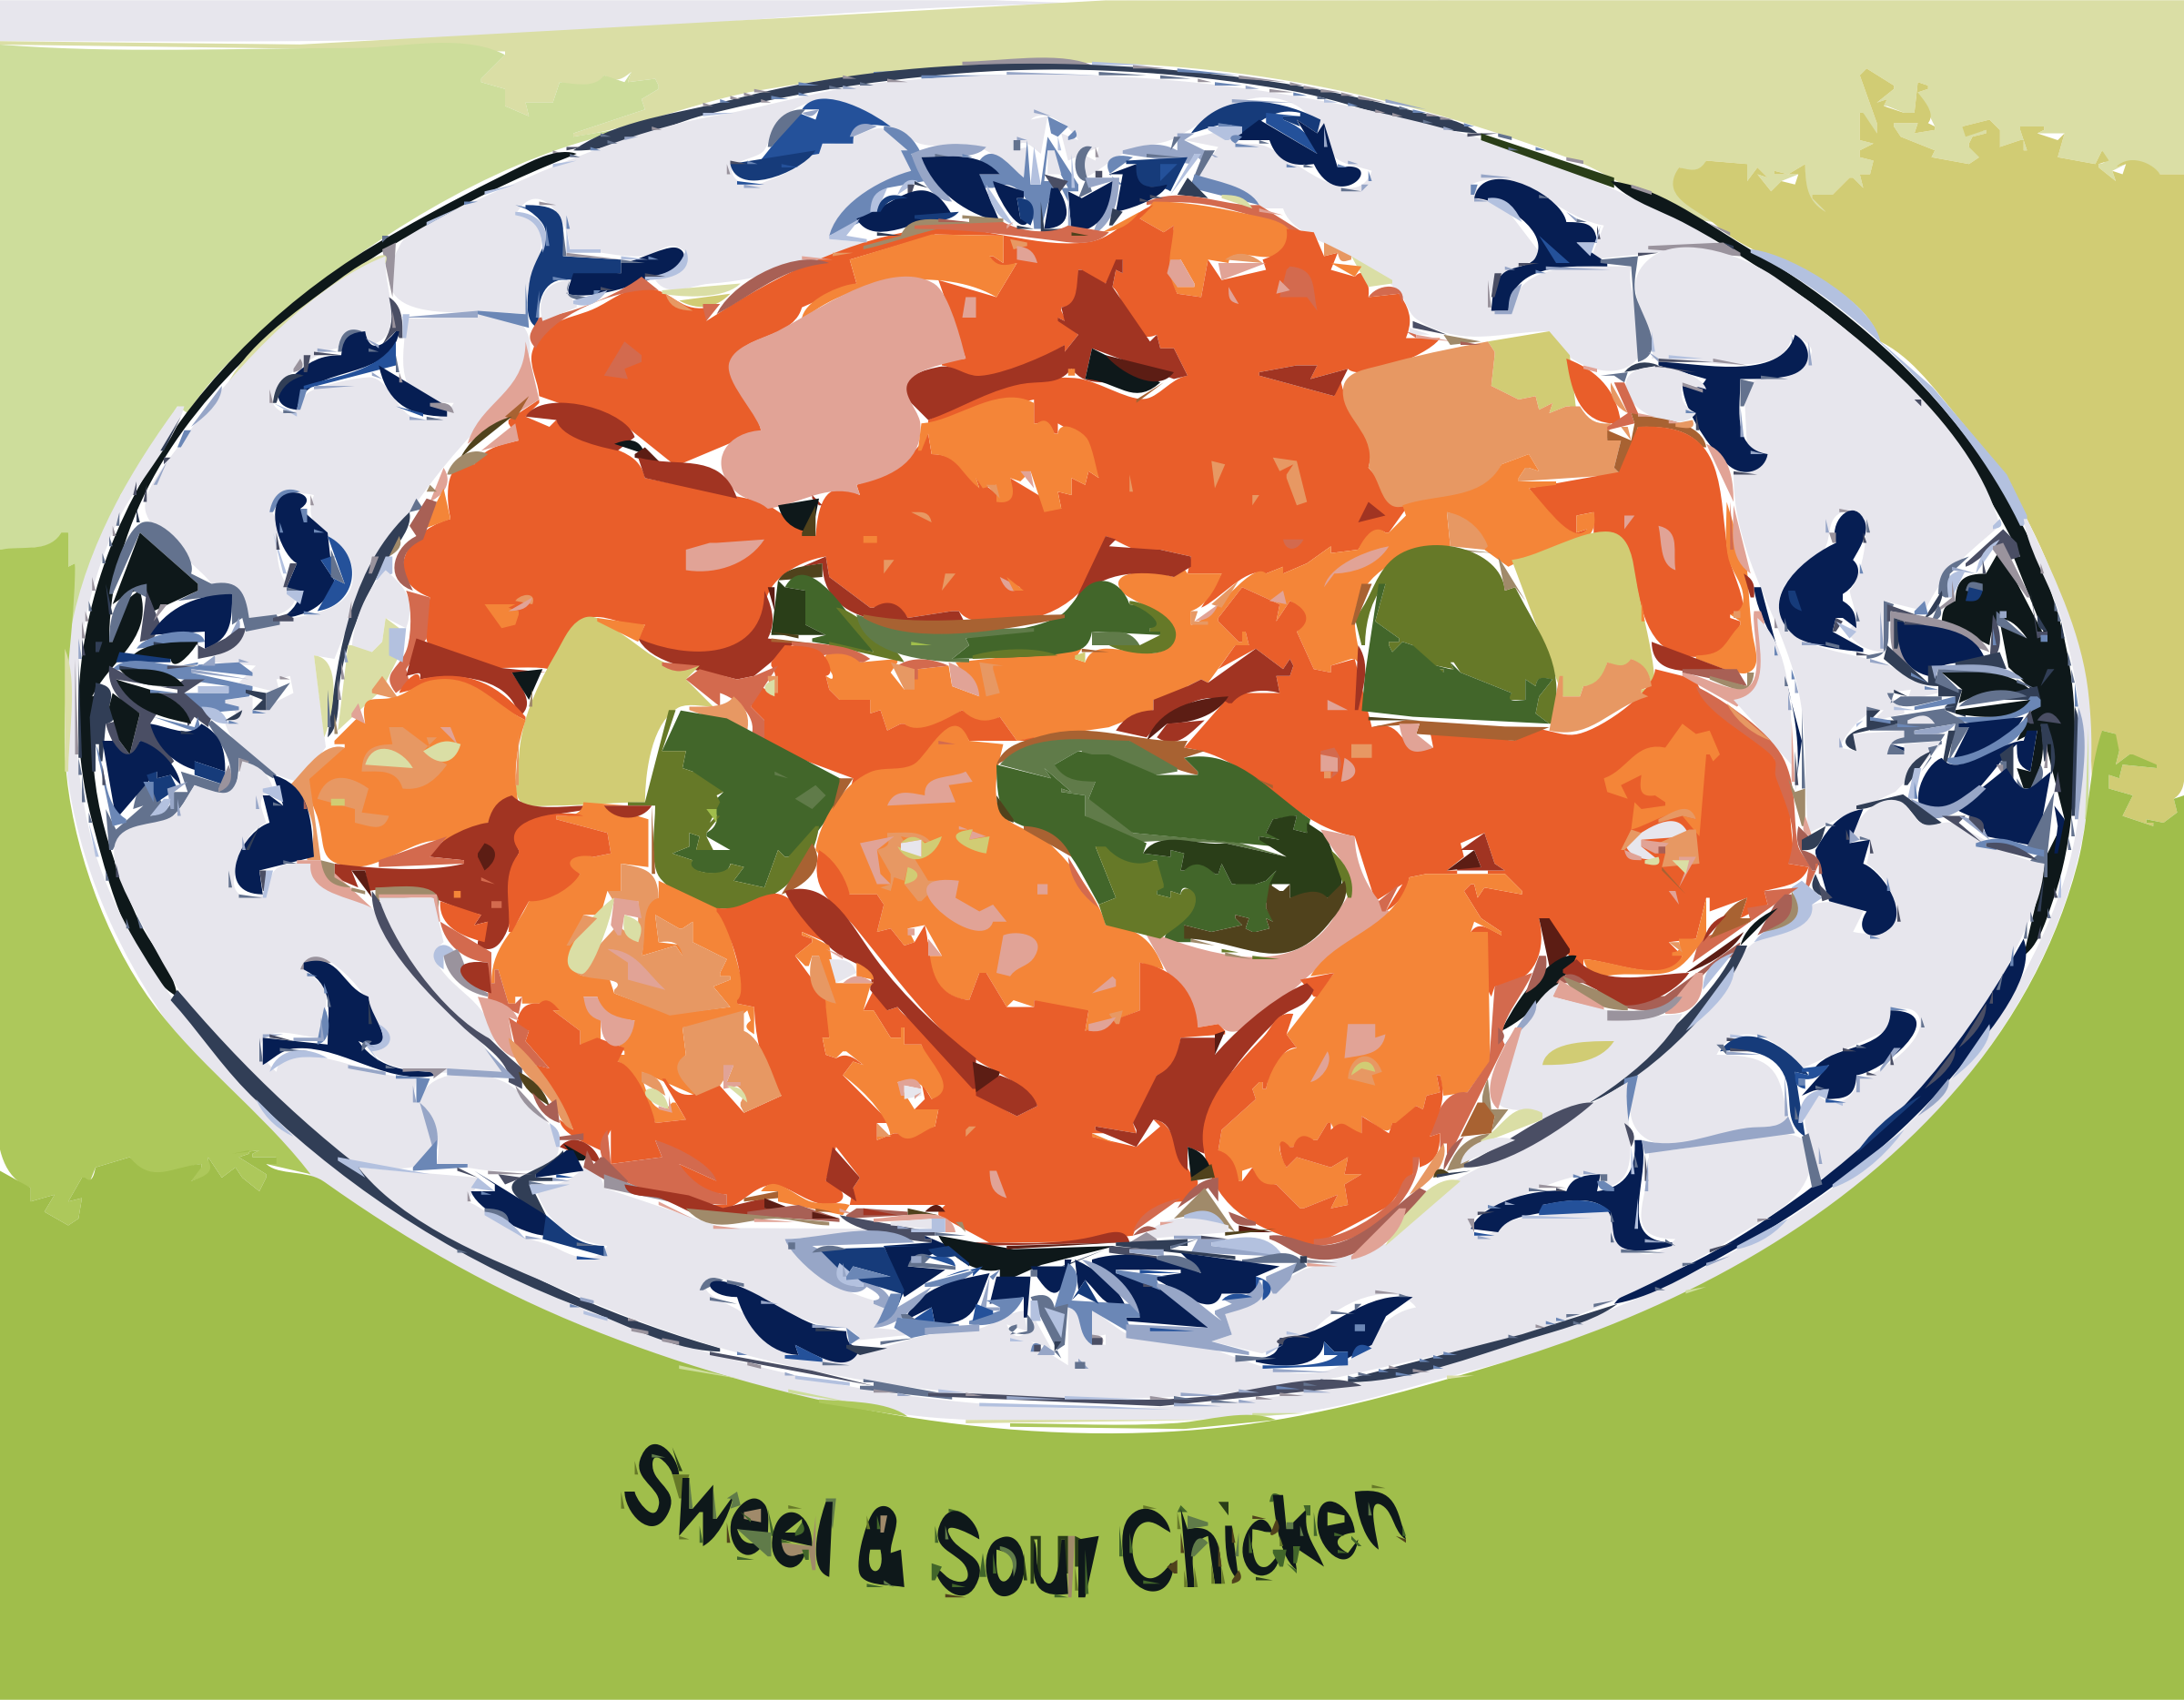 Sweet & Sour Chicken by rejon